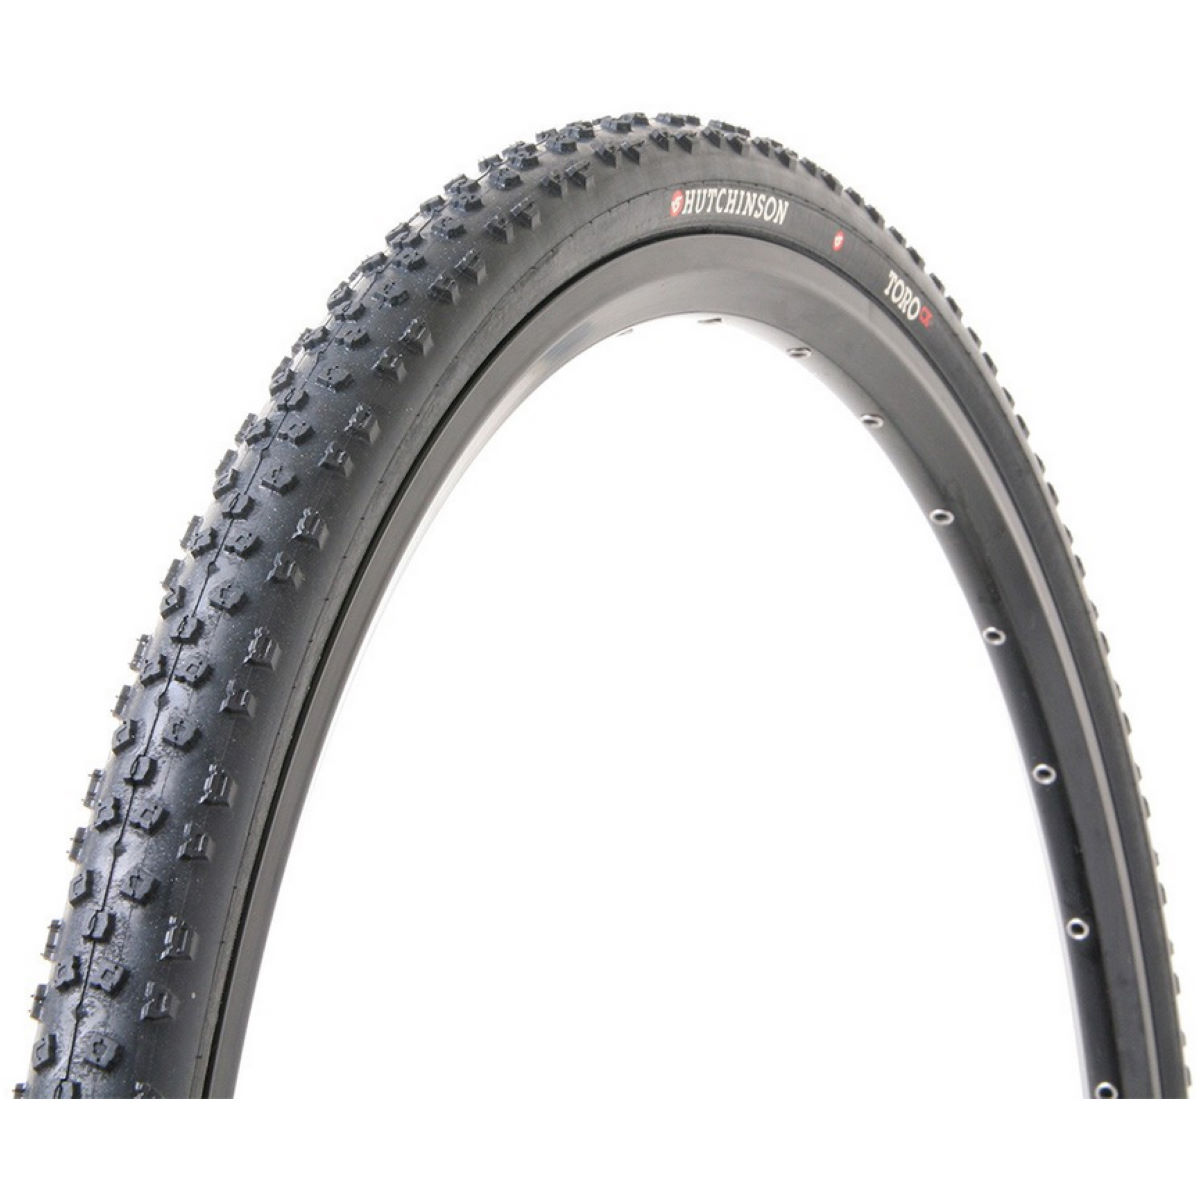 Pneu de cyclo-cross Hutchinson Toro (souple) - 700 x 32c Noir